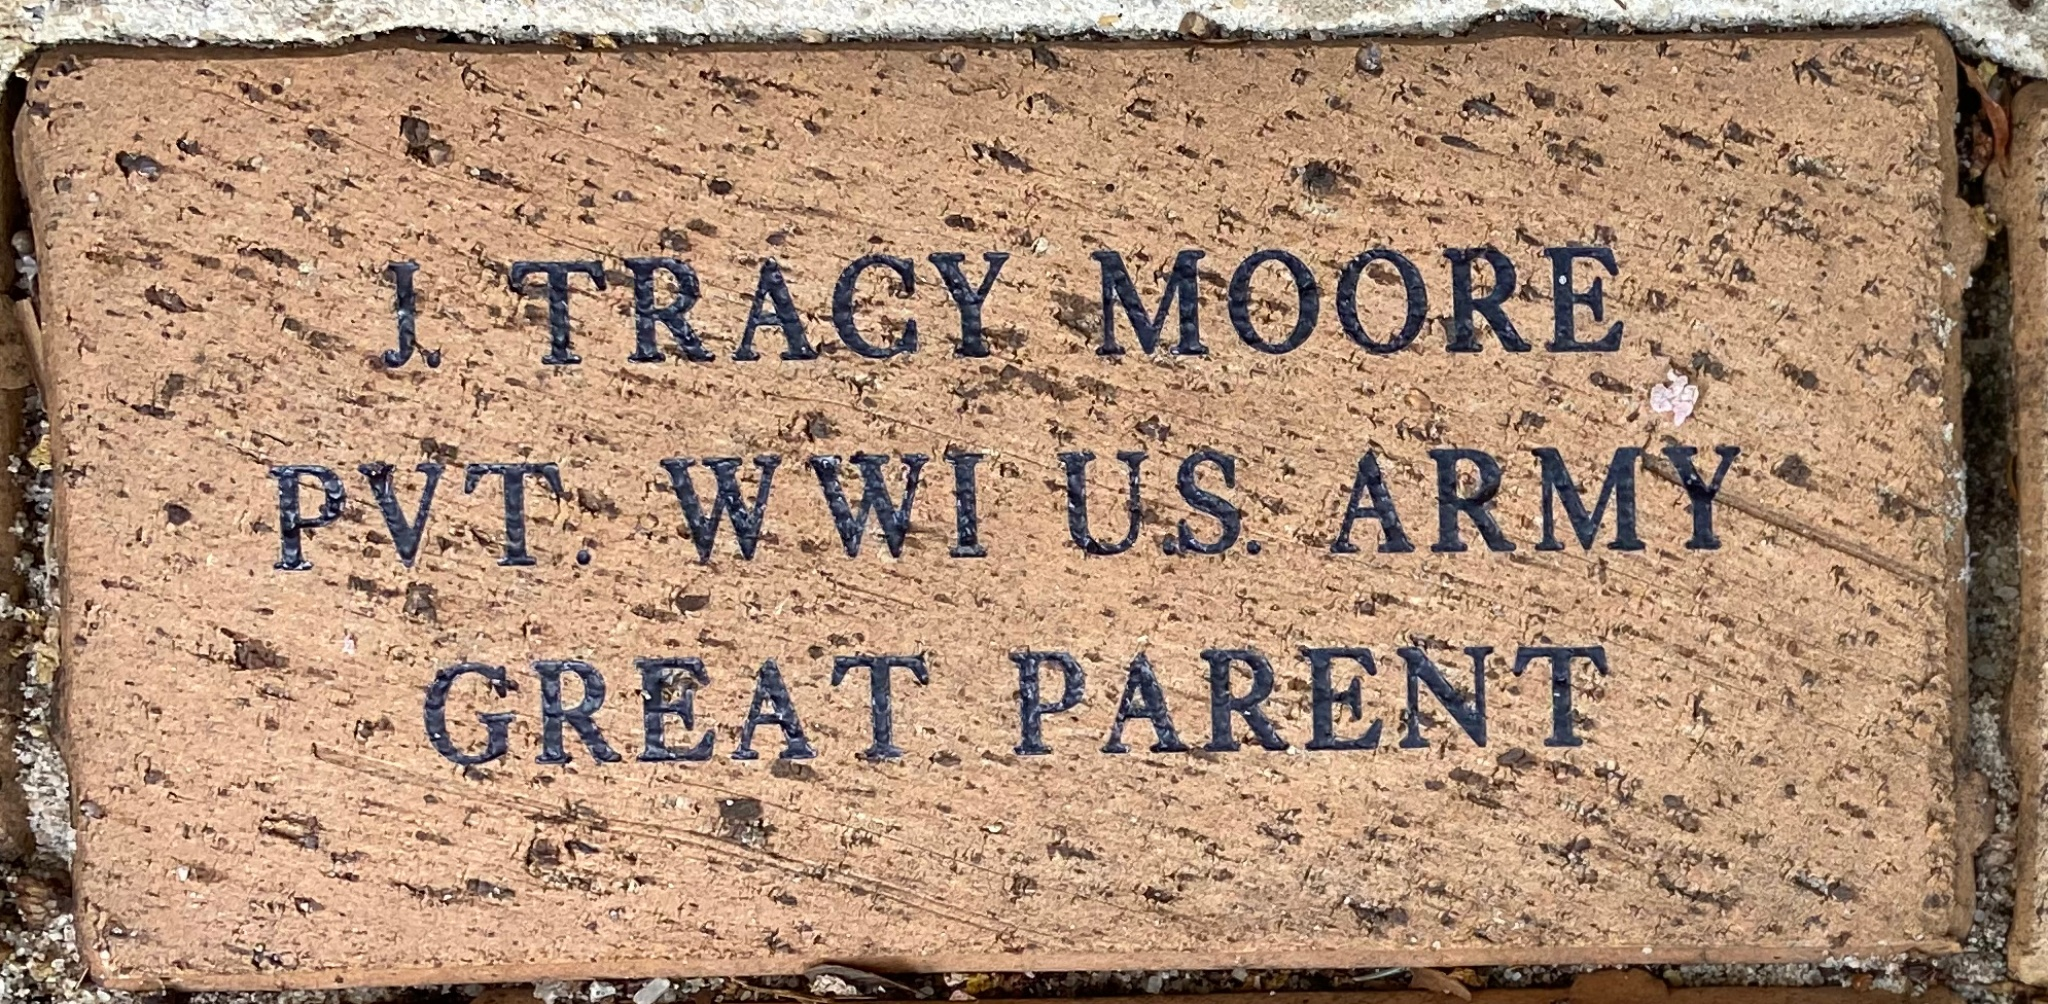 J. TRACY MOORE PVT WWI U.S. ARMY GREAT PARENT